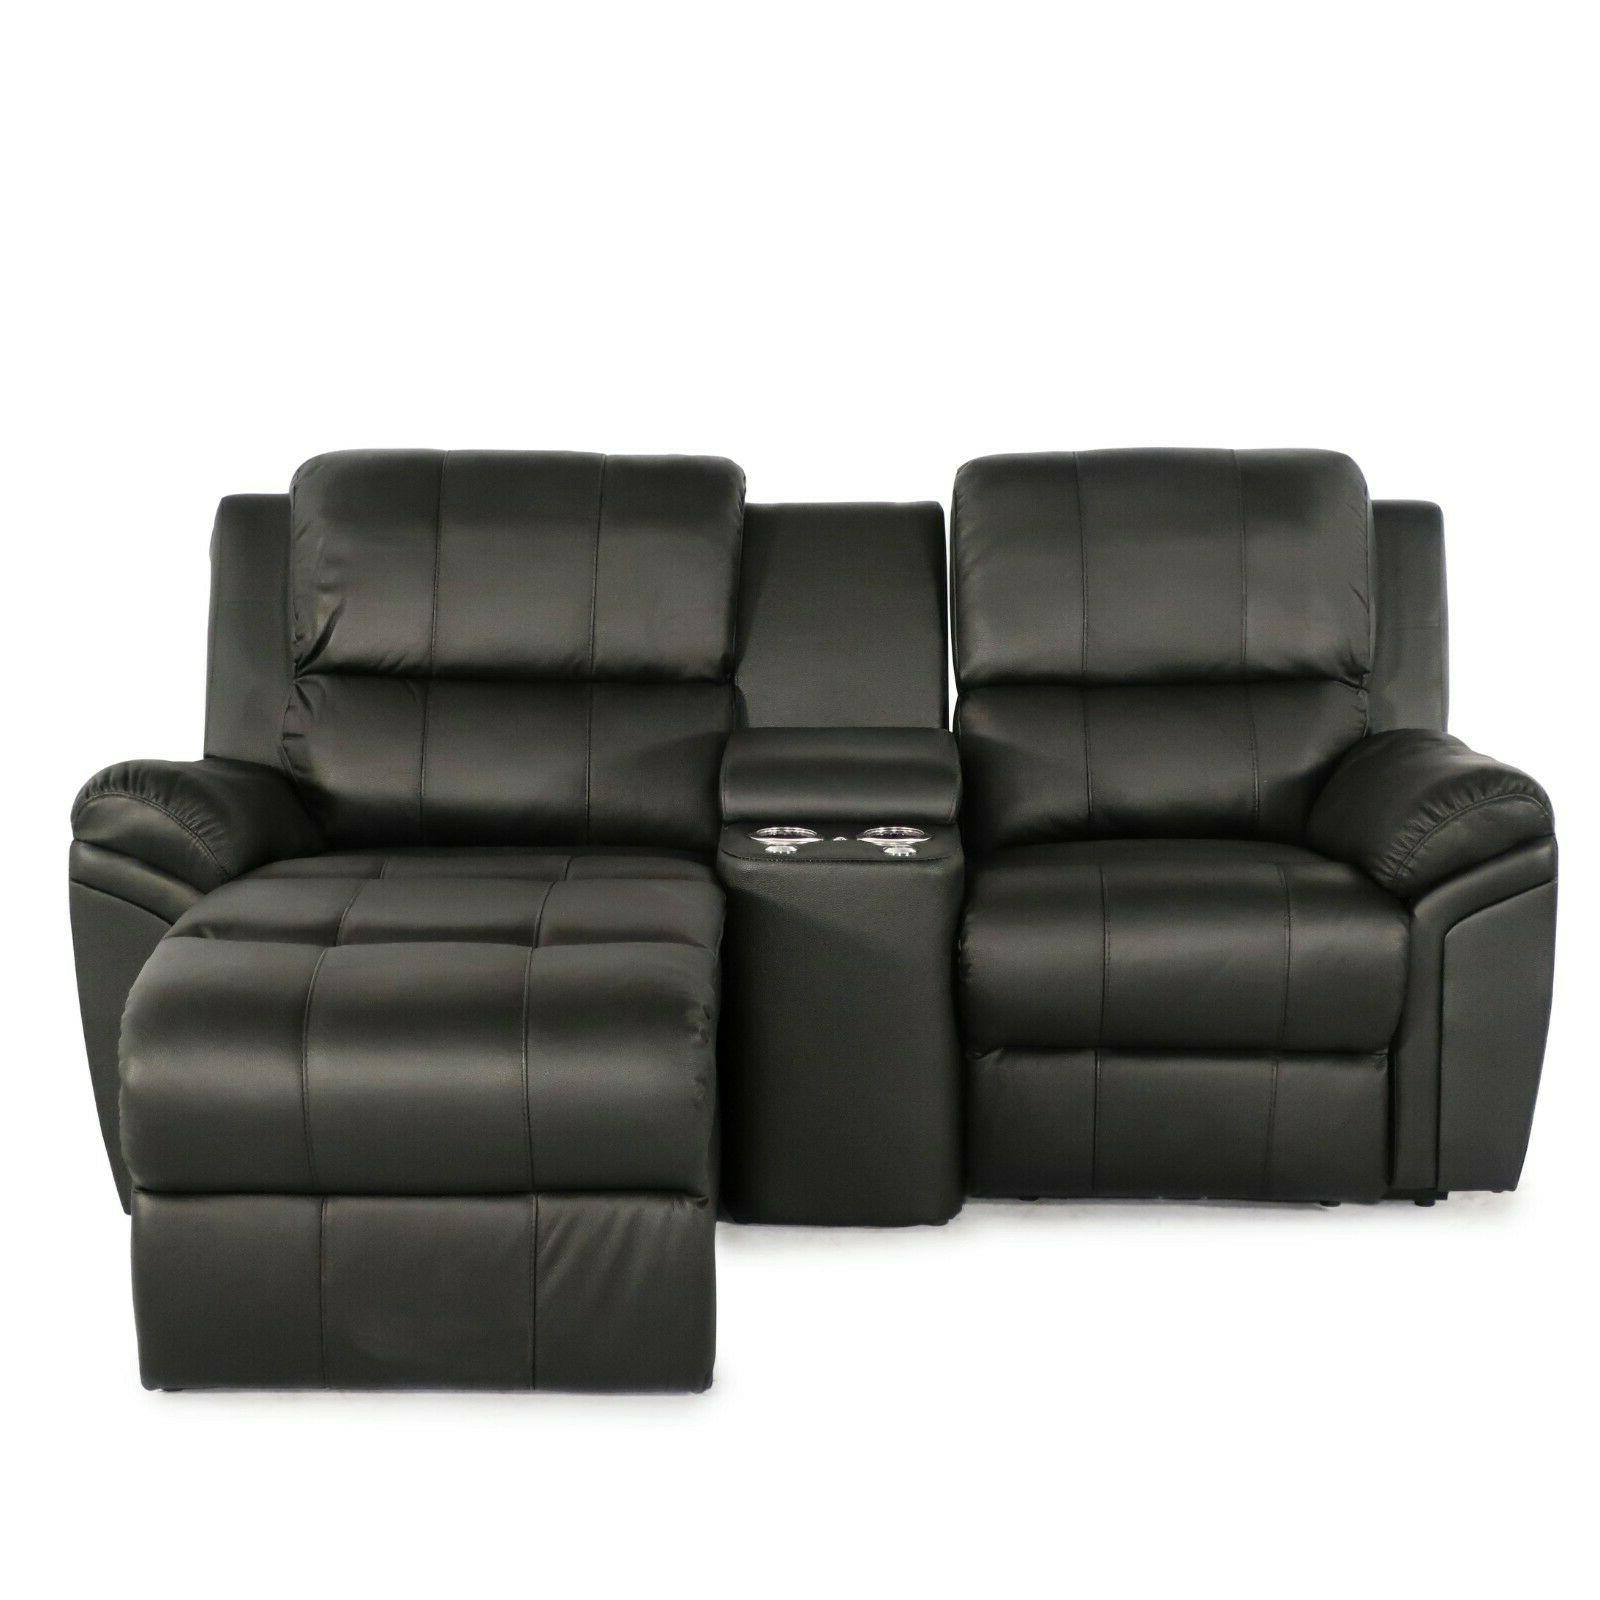 madison leather black home theater seating power